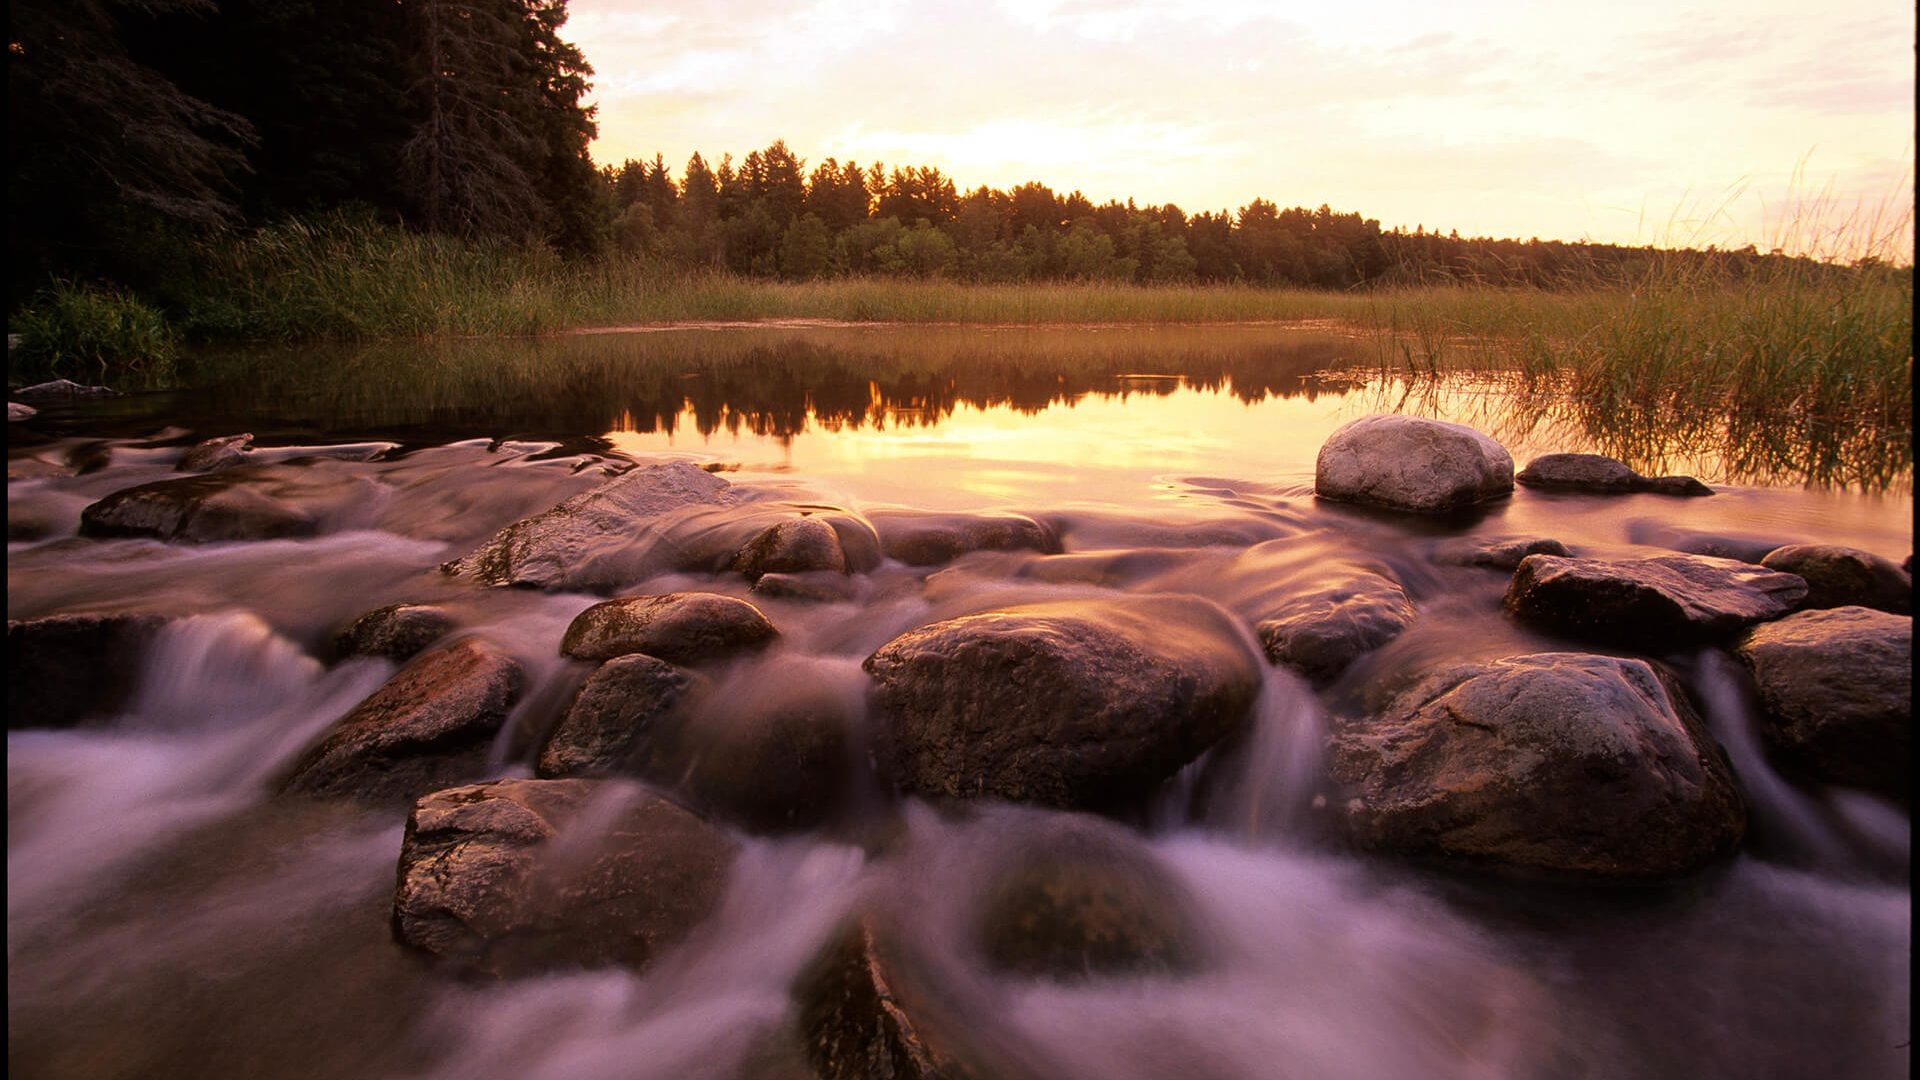 Lake Itasca and Headwaters of the Mississippi River in Itasca State Park